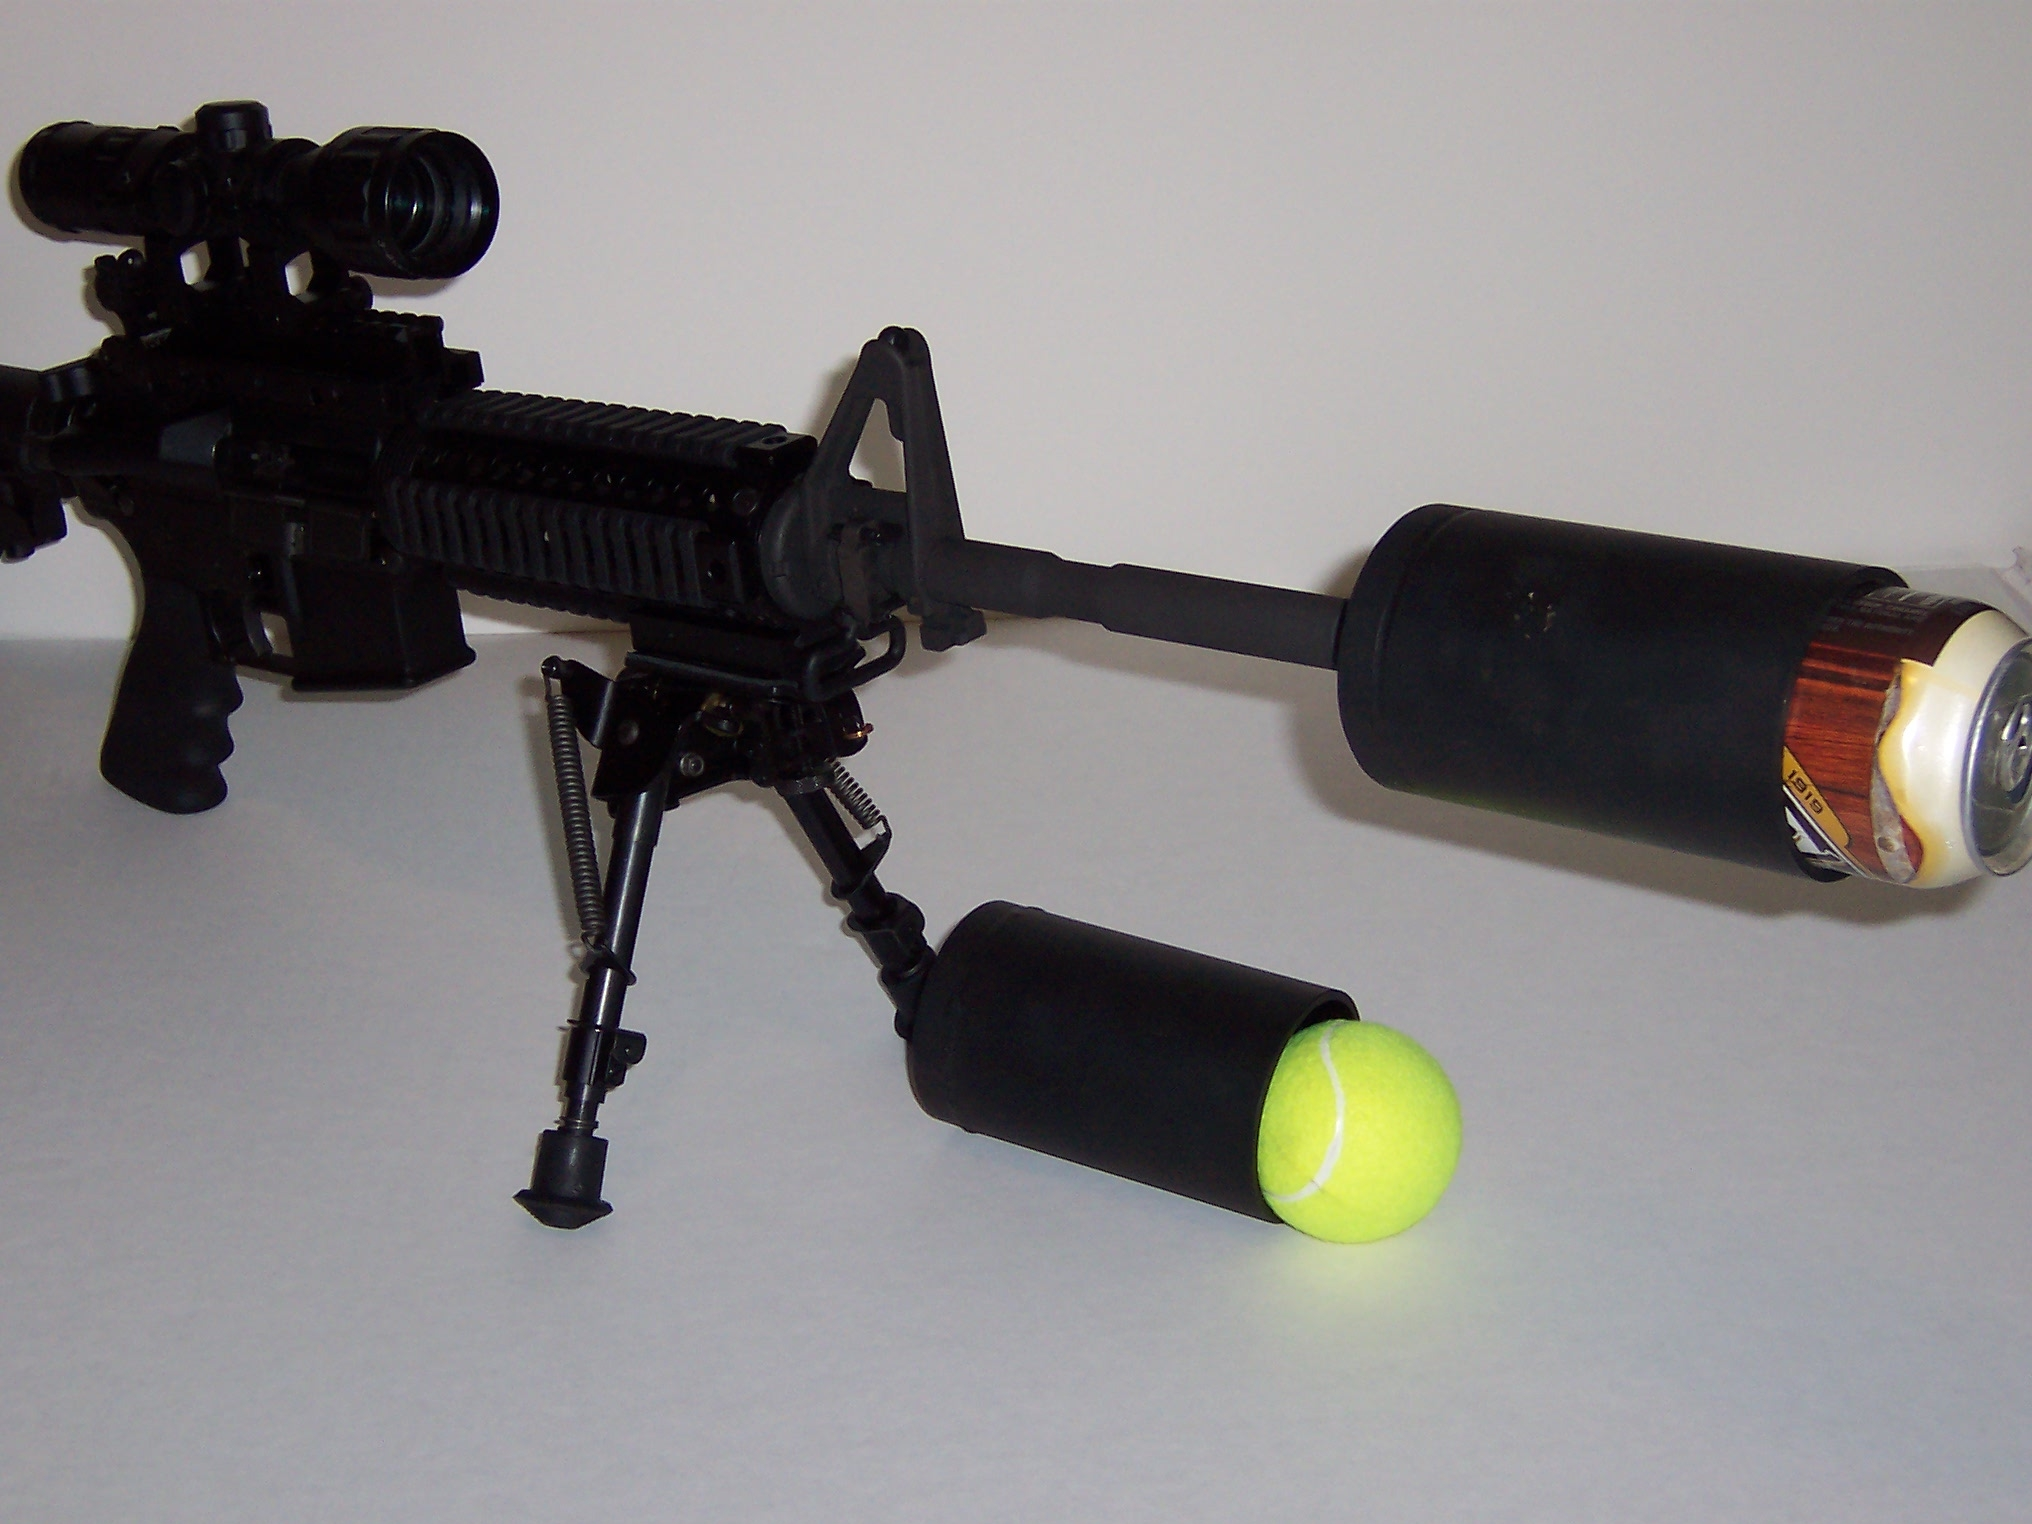 Tennis Ball Launcher Ar-15 Related Keywords & Suggestions - Tennis